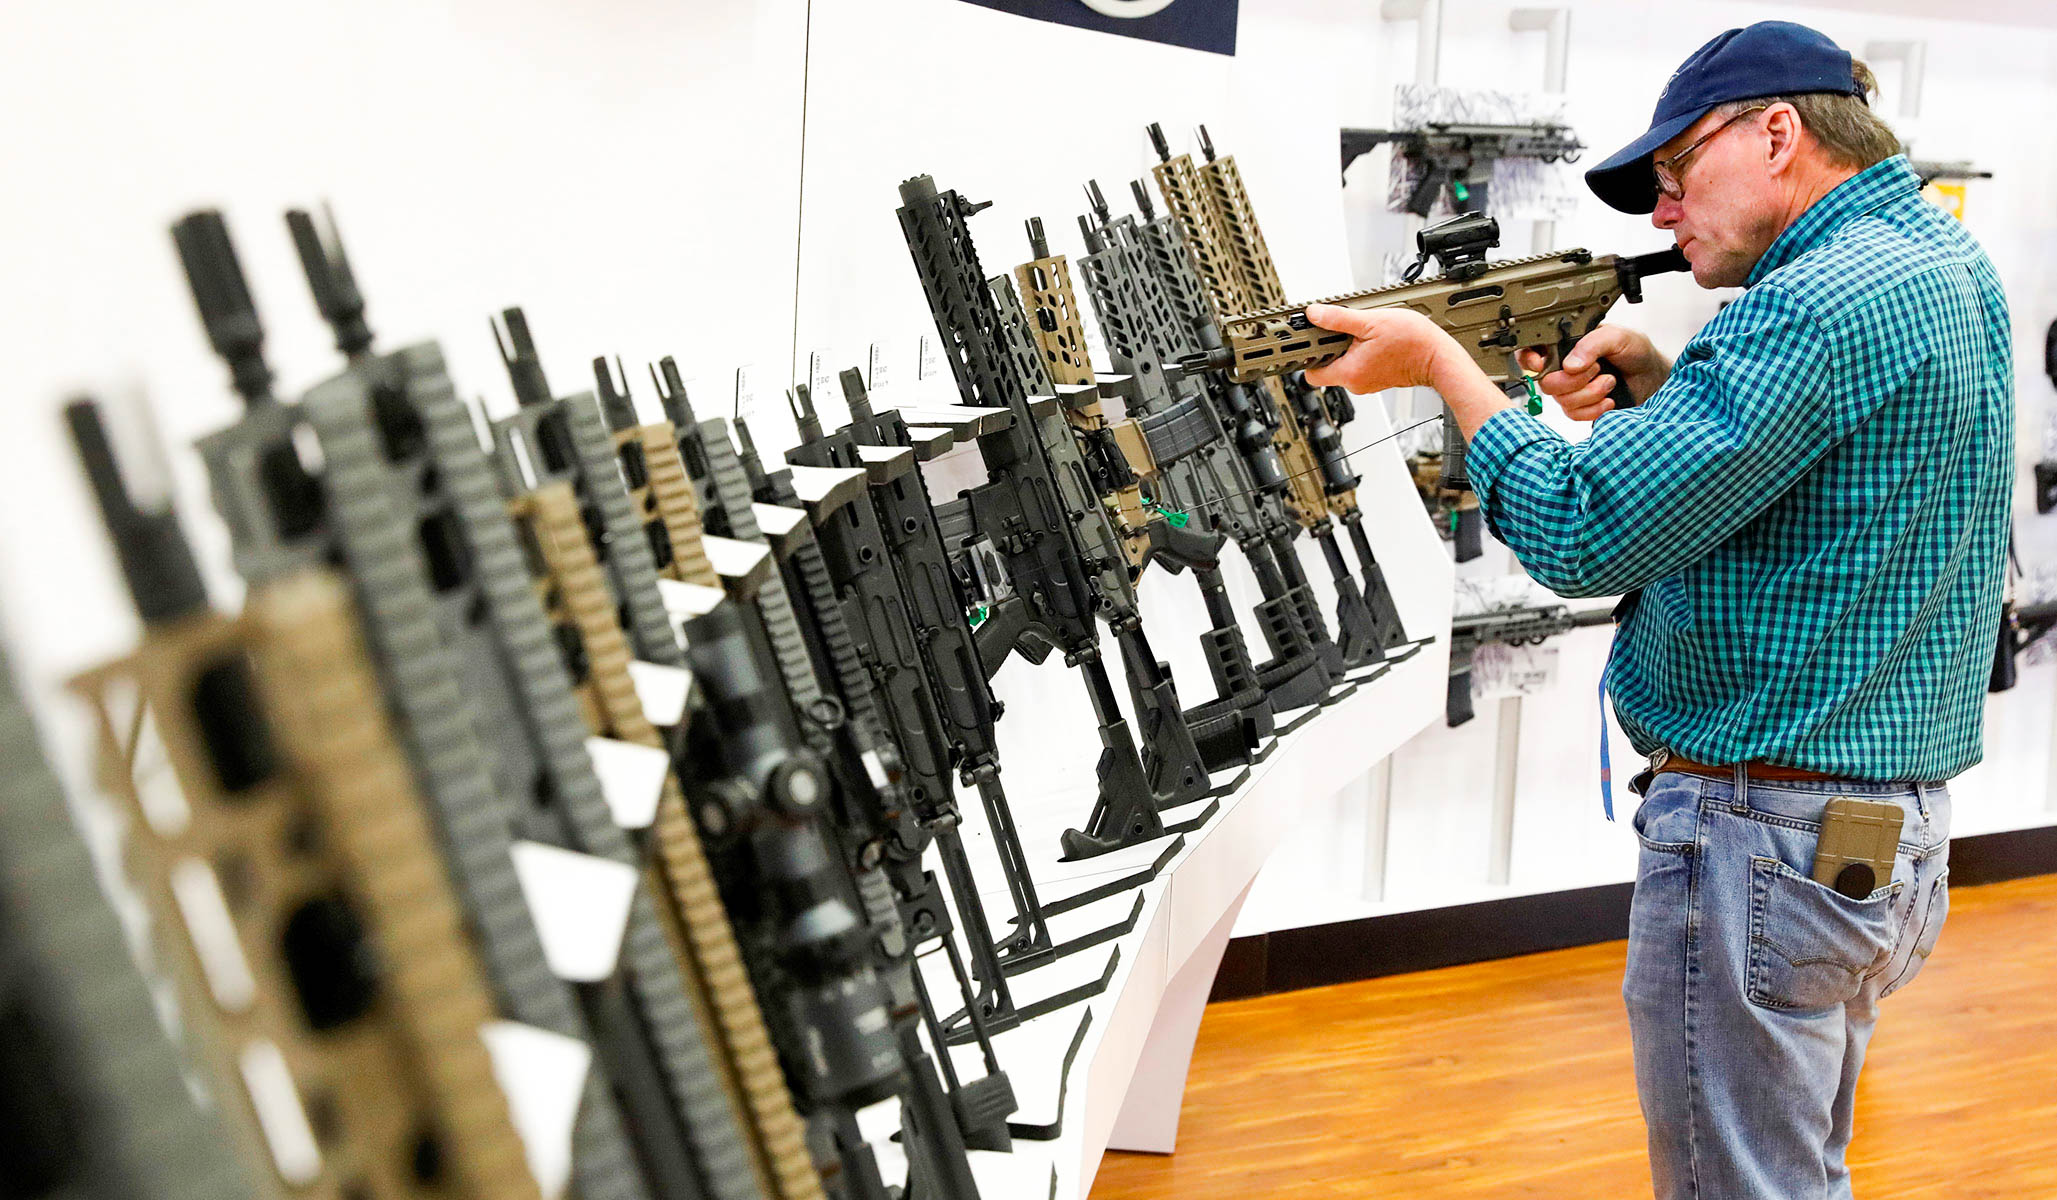 Regurgitating Talking Points about Assault Weapons Is Not 'New Research'